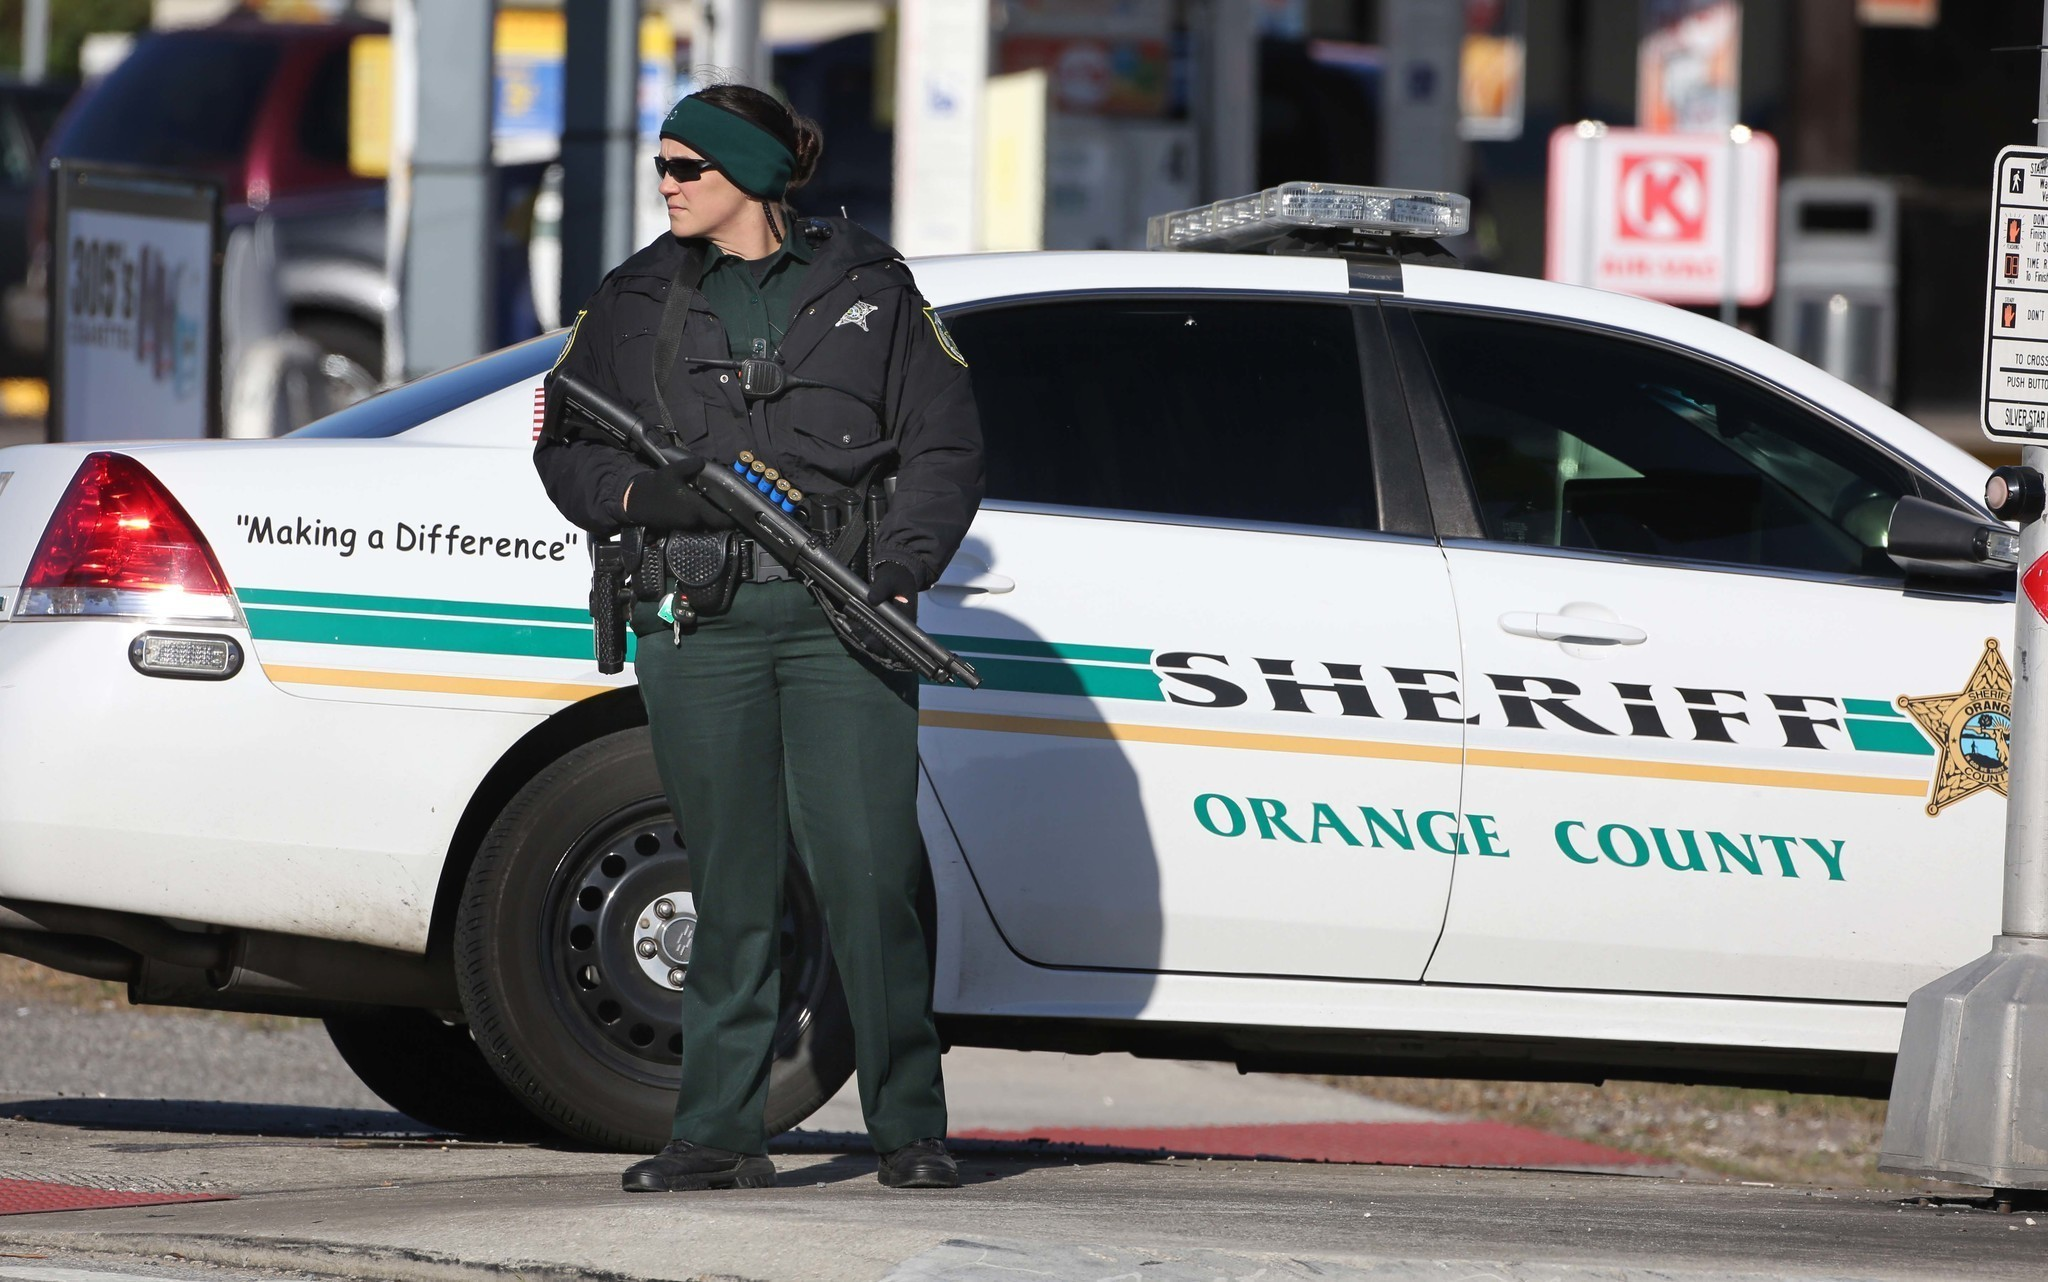 Orlando police still hunting for man who killed officer orlando orlando police still hunting for man who killed officer orlando sentinel publicscrutiny Image collections